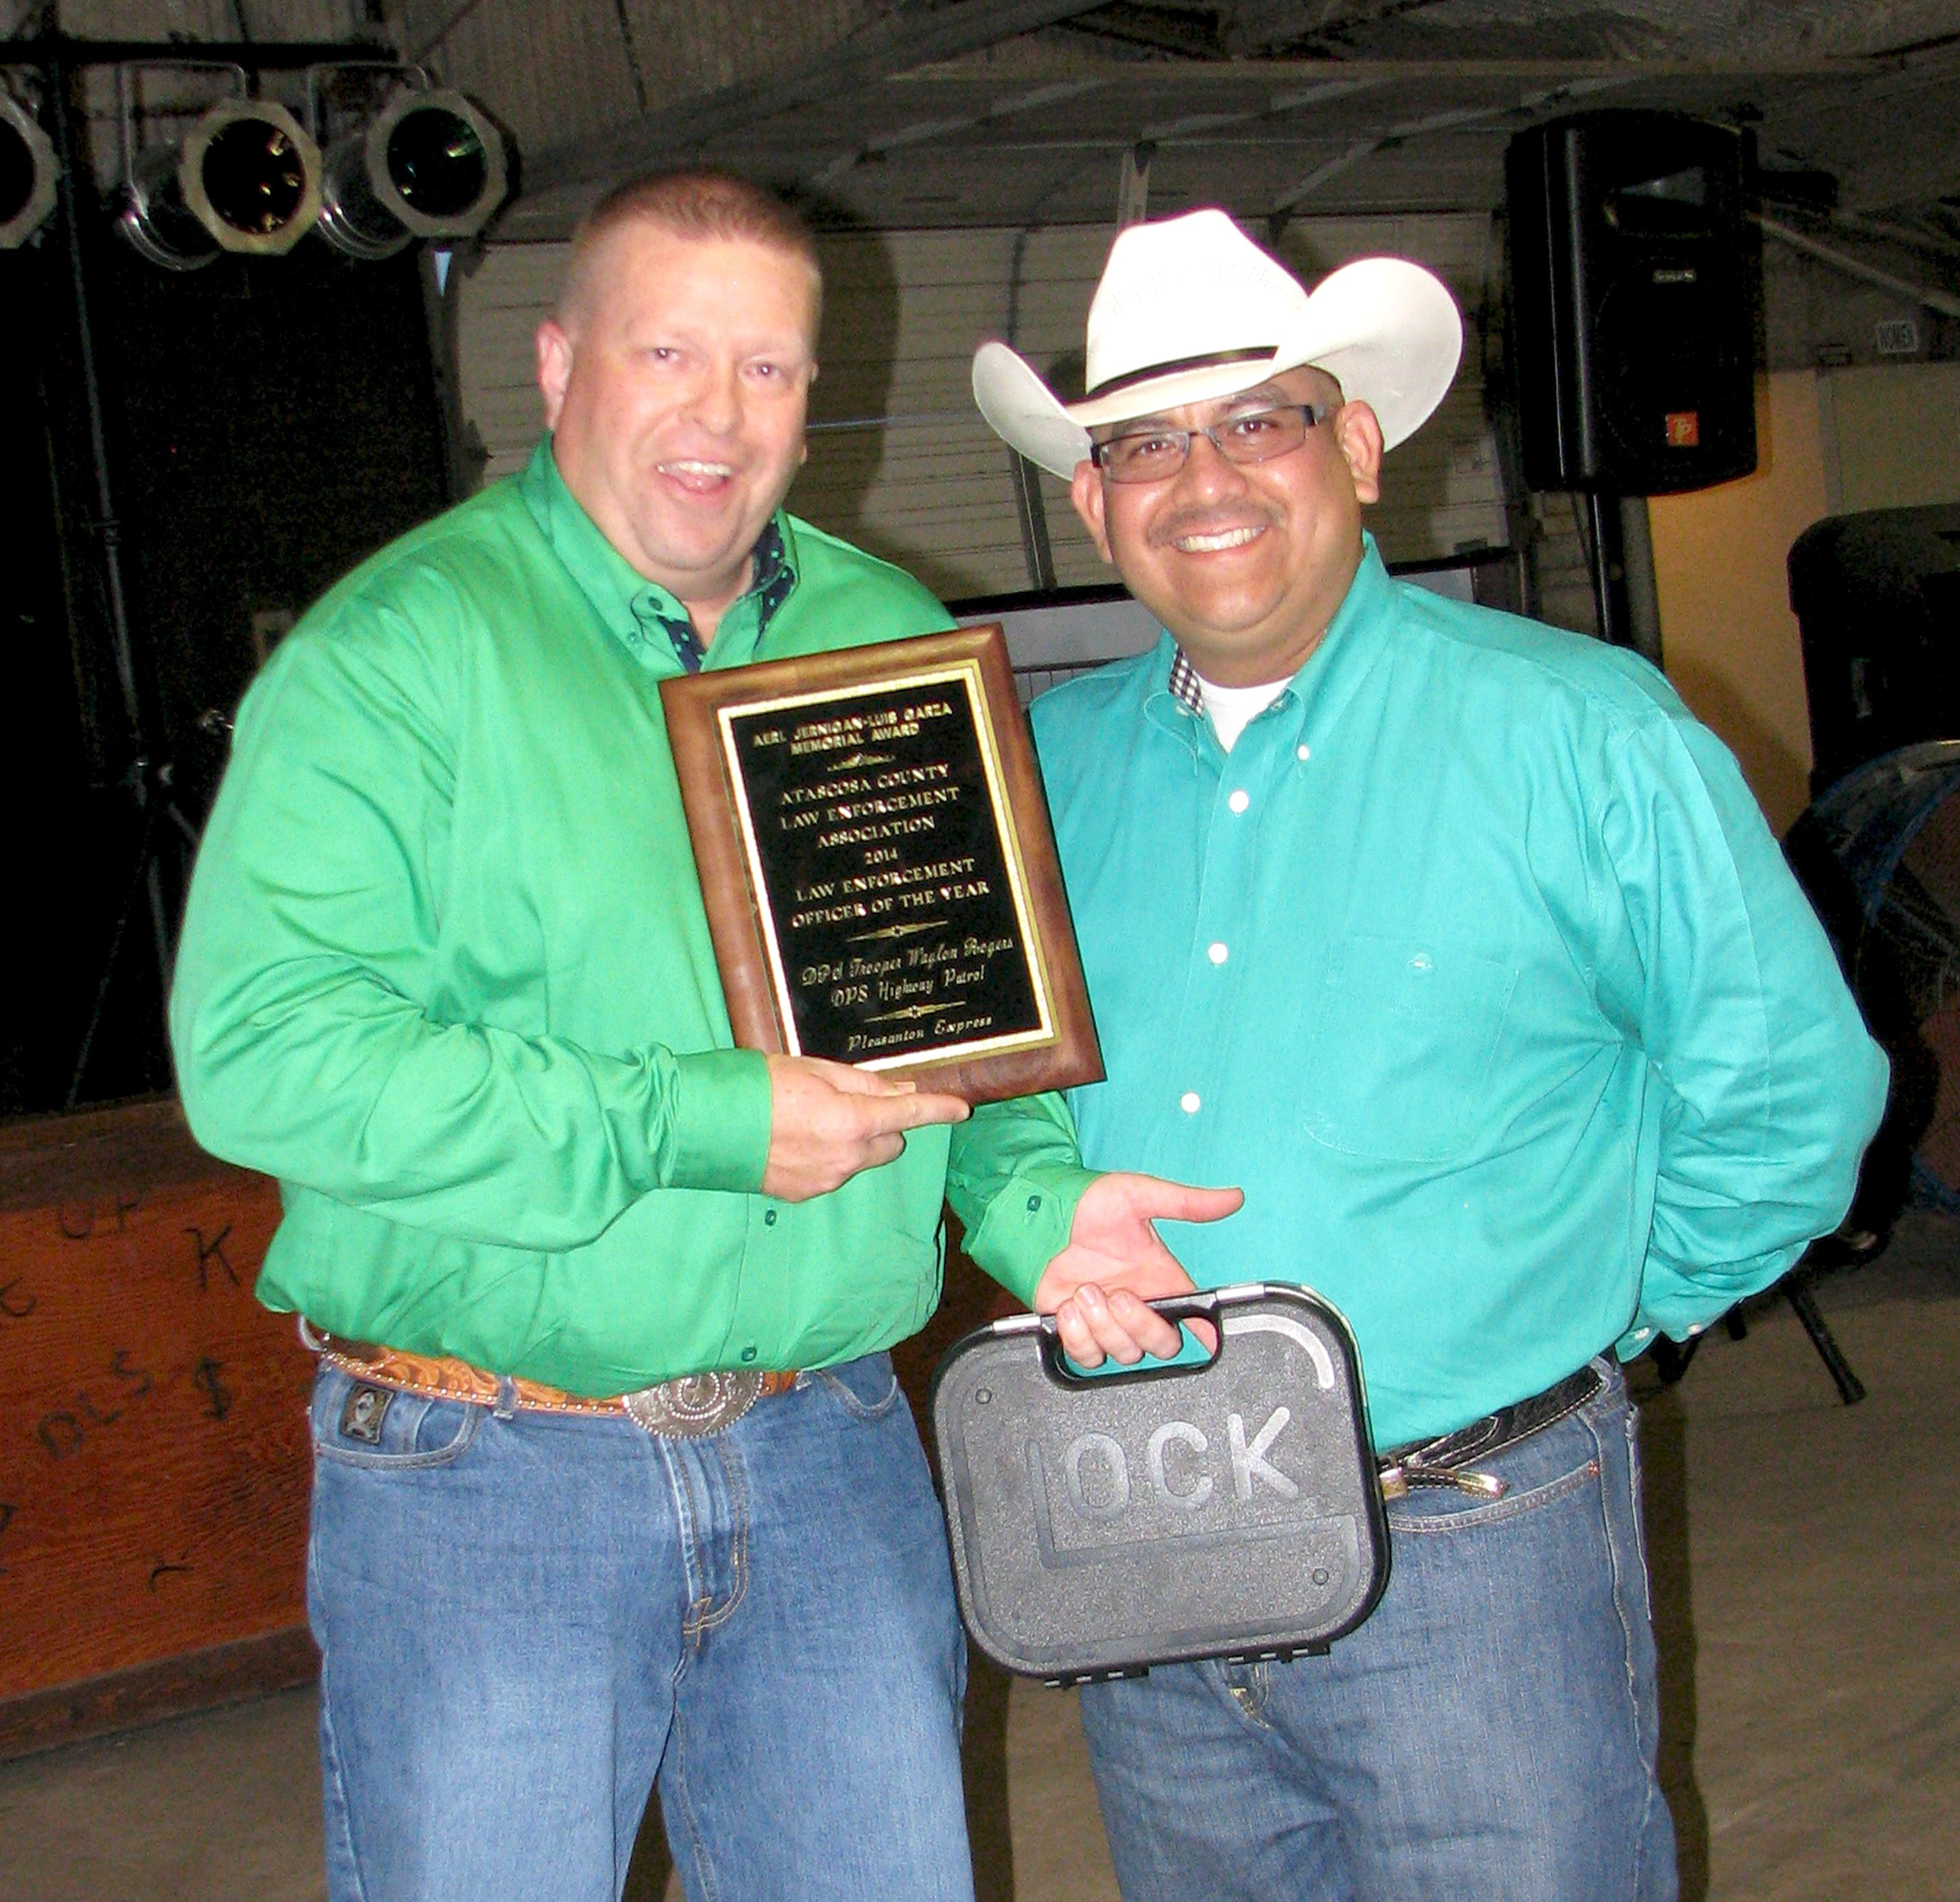 DPS Trooper Waylon Rogers, left, received the 2014 Atascosa County Law Enforcement Officer Association Officer of the Year award, sponsored by the Pleasanton Express and a Glock .40 pistol from ACELOA presented by President Albert Garza.